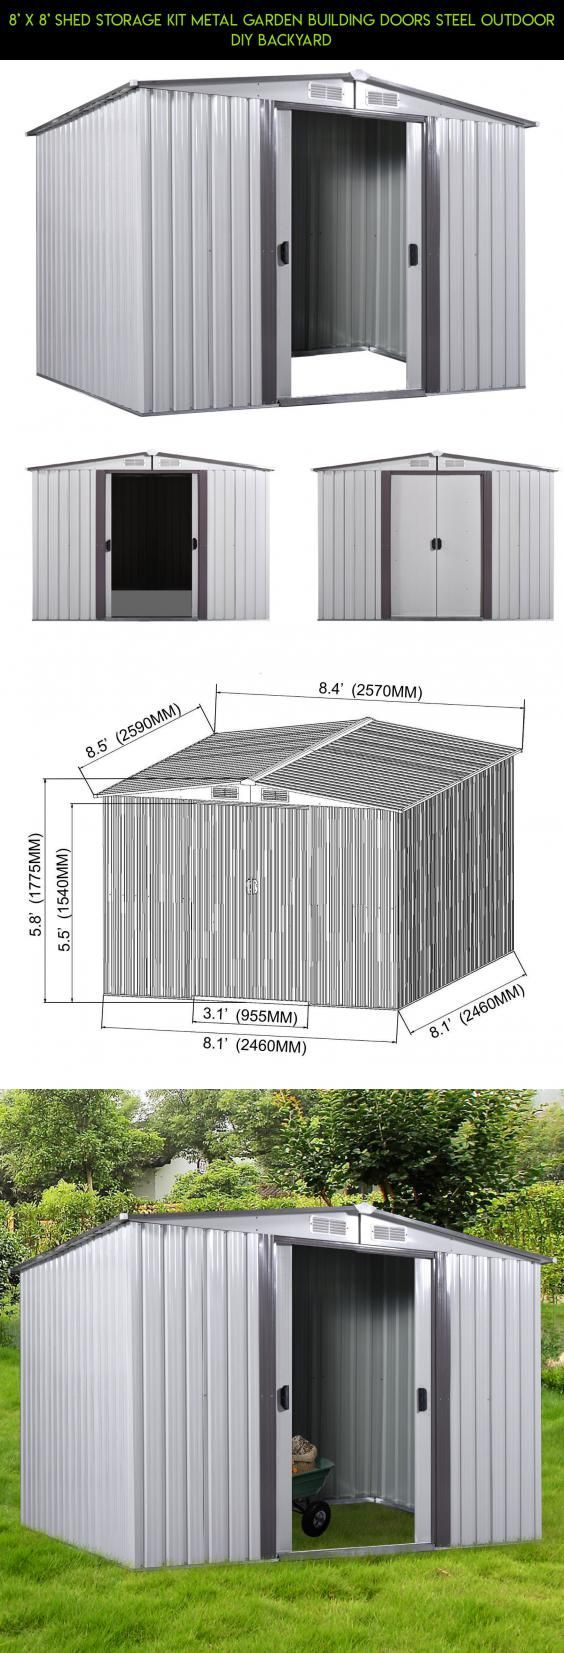 8' x 8' Shed Storage Kit Metal Garden Building Doors Steel Outdoor DIY Backyard #gadgets #fpv #drone #technology #plans #storage #8x8 #products #racing #camera #parts #kit #tech #shopping #DIYShed8x8